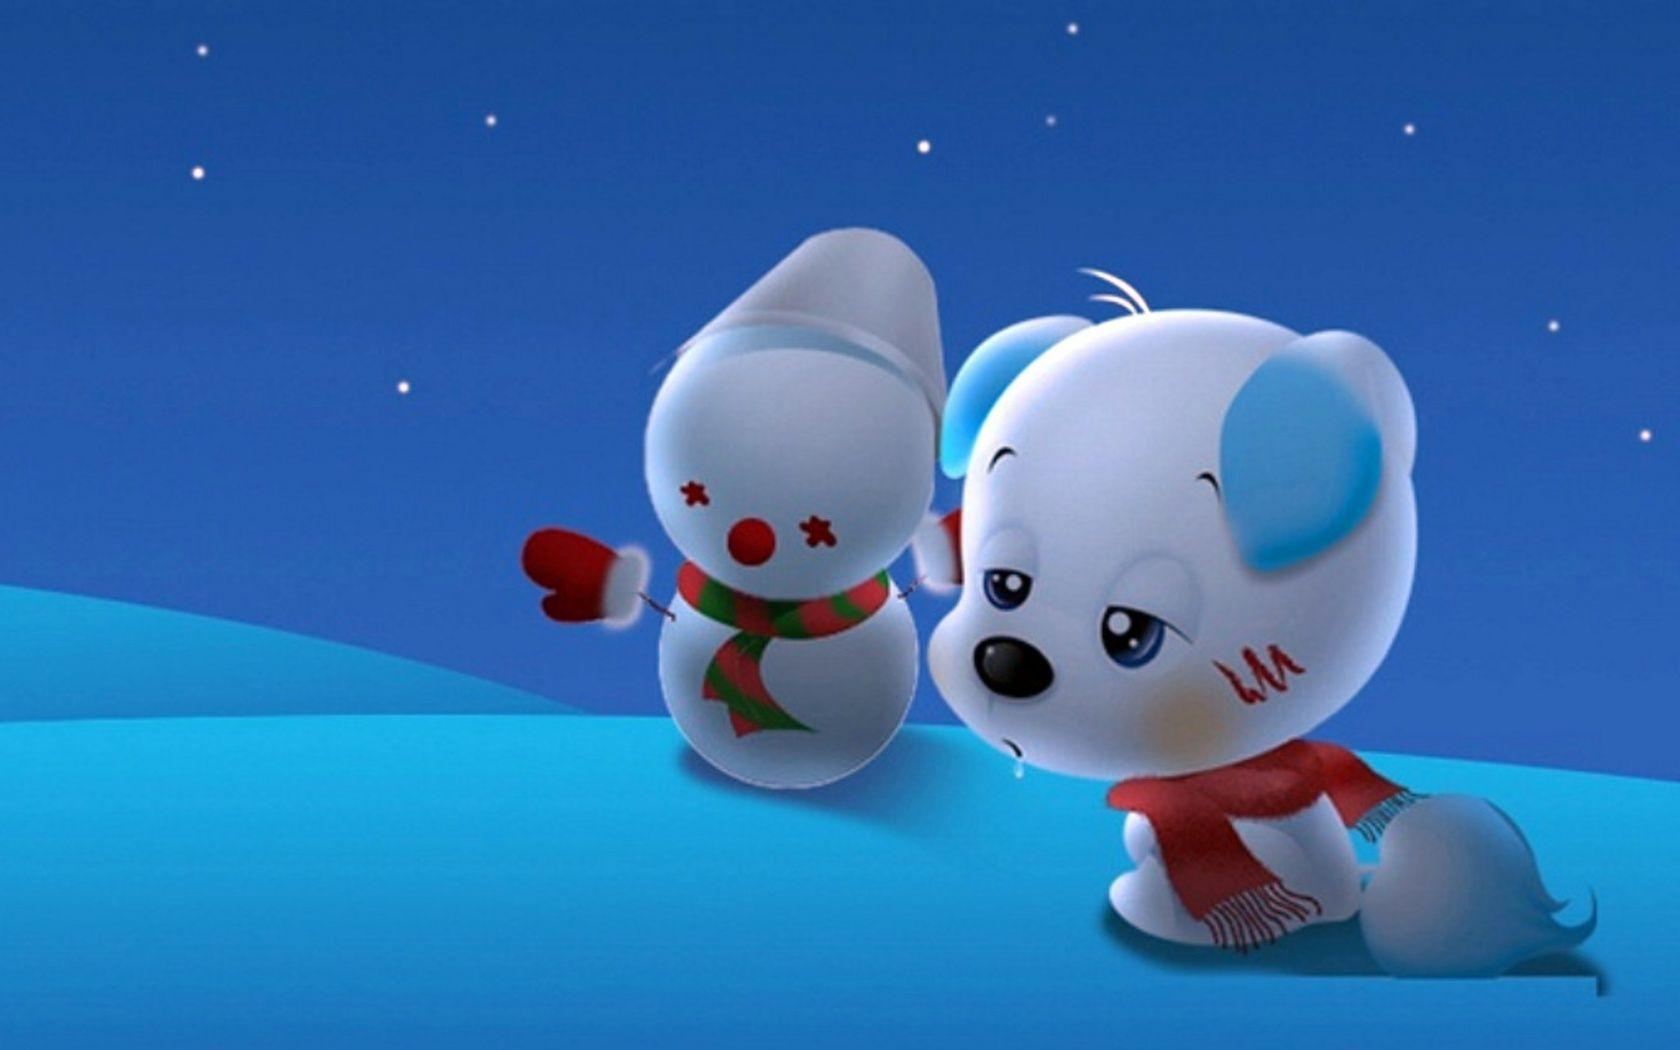 Cute Anime Dogs Wallpapers - Wallpaper Cave